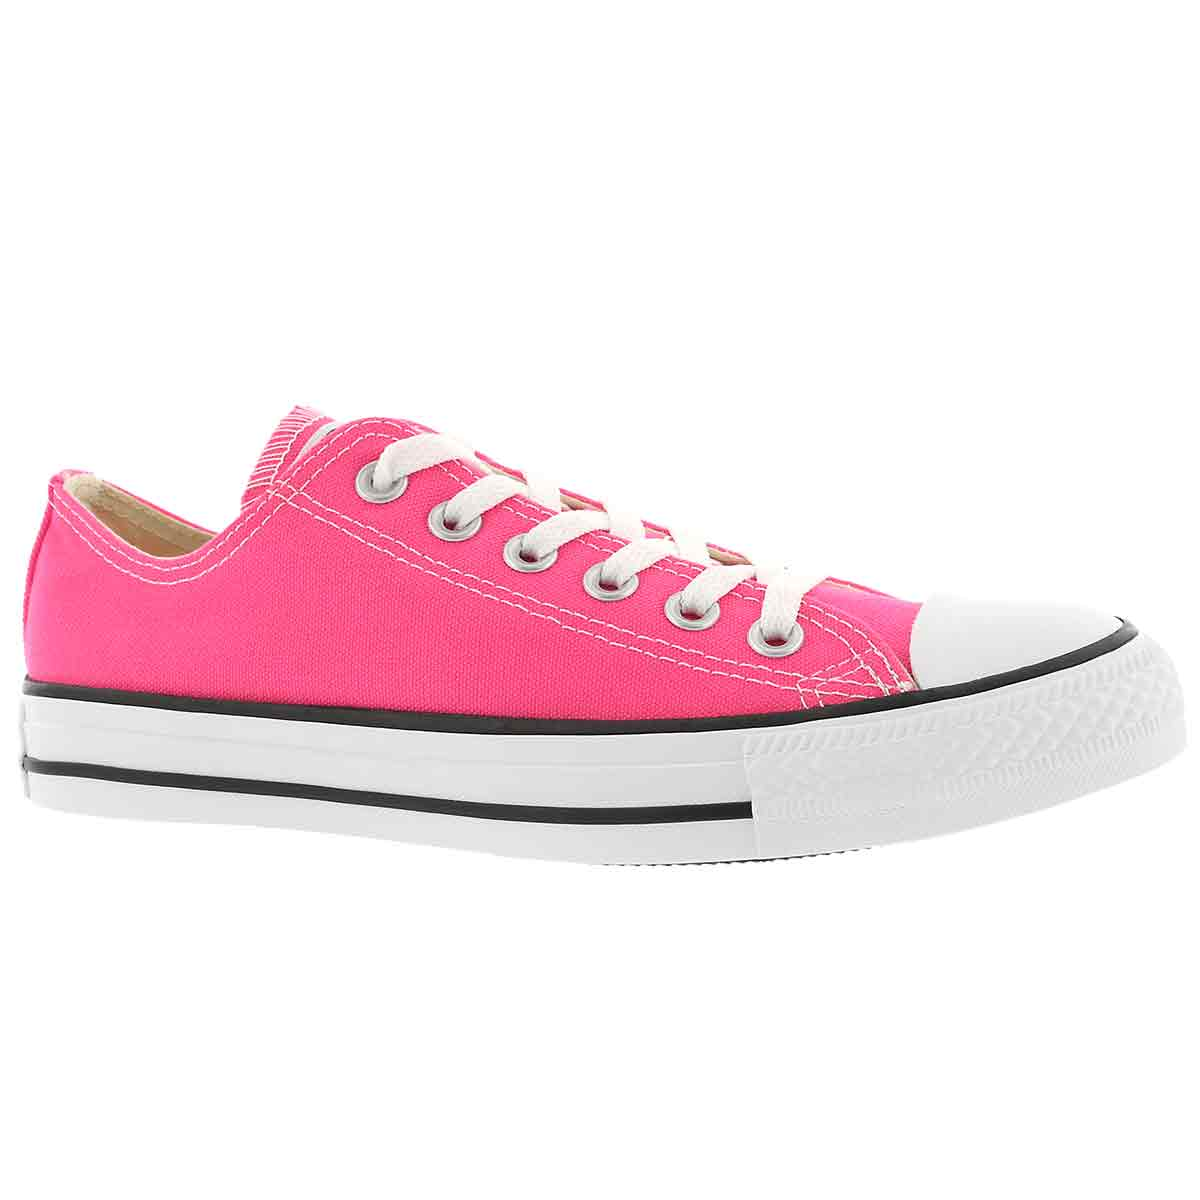 Women's CT ALL STAR SEASONAL pink pow sneakers